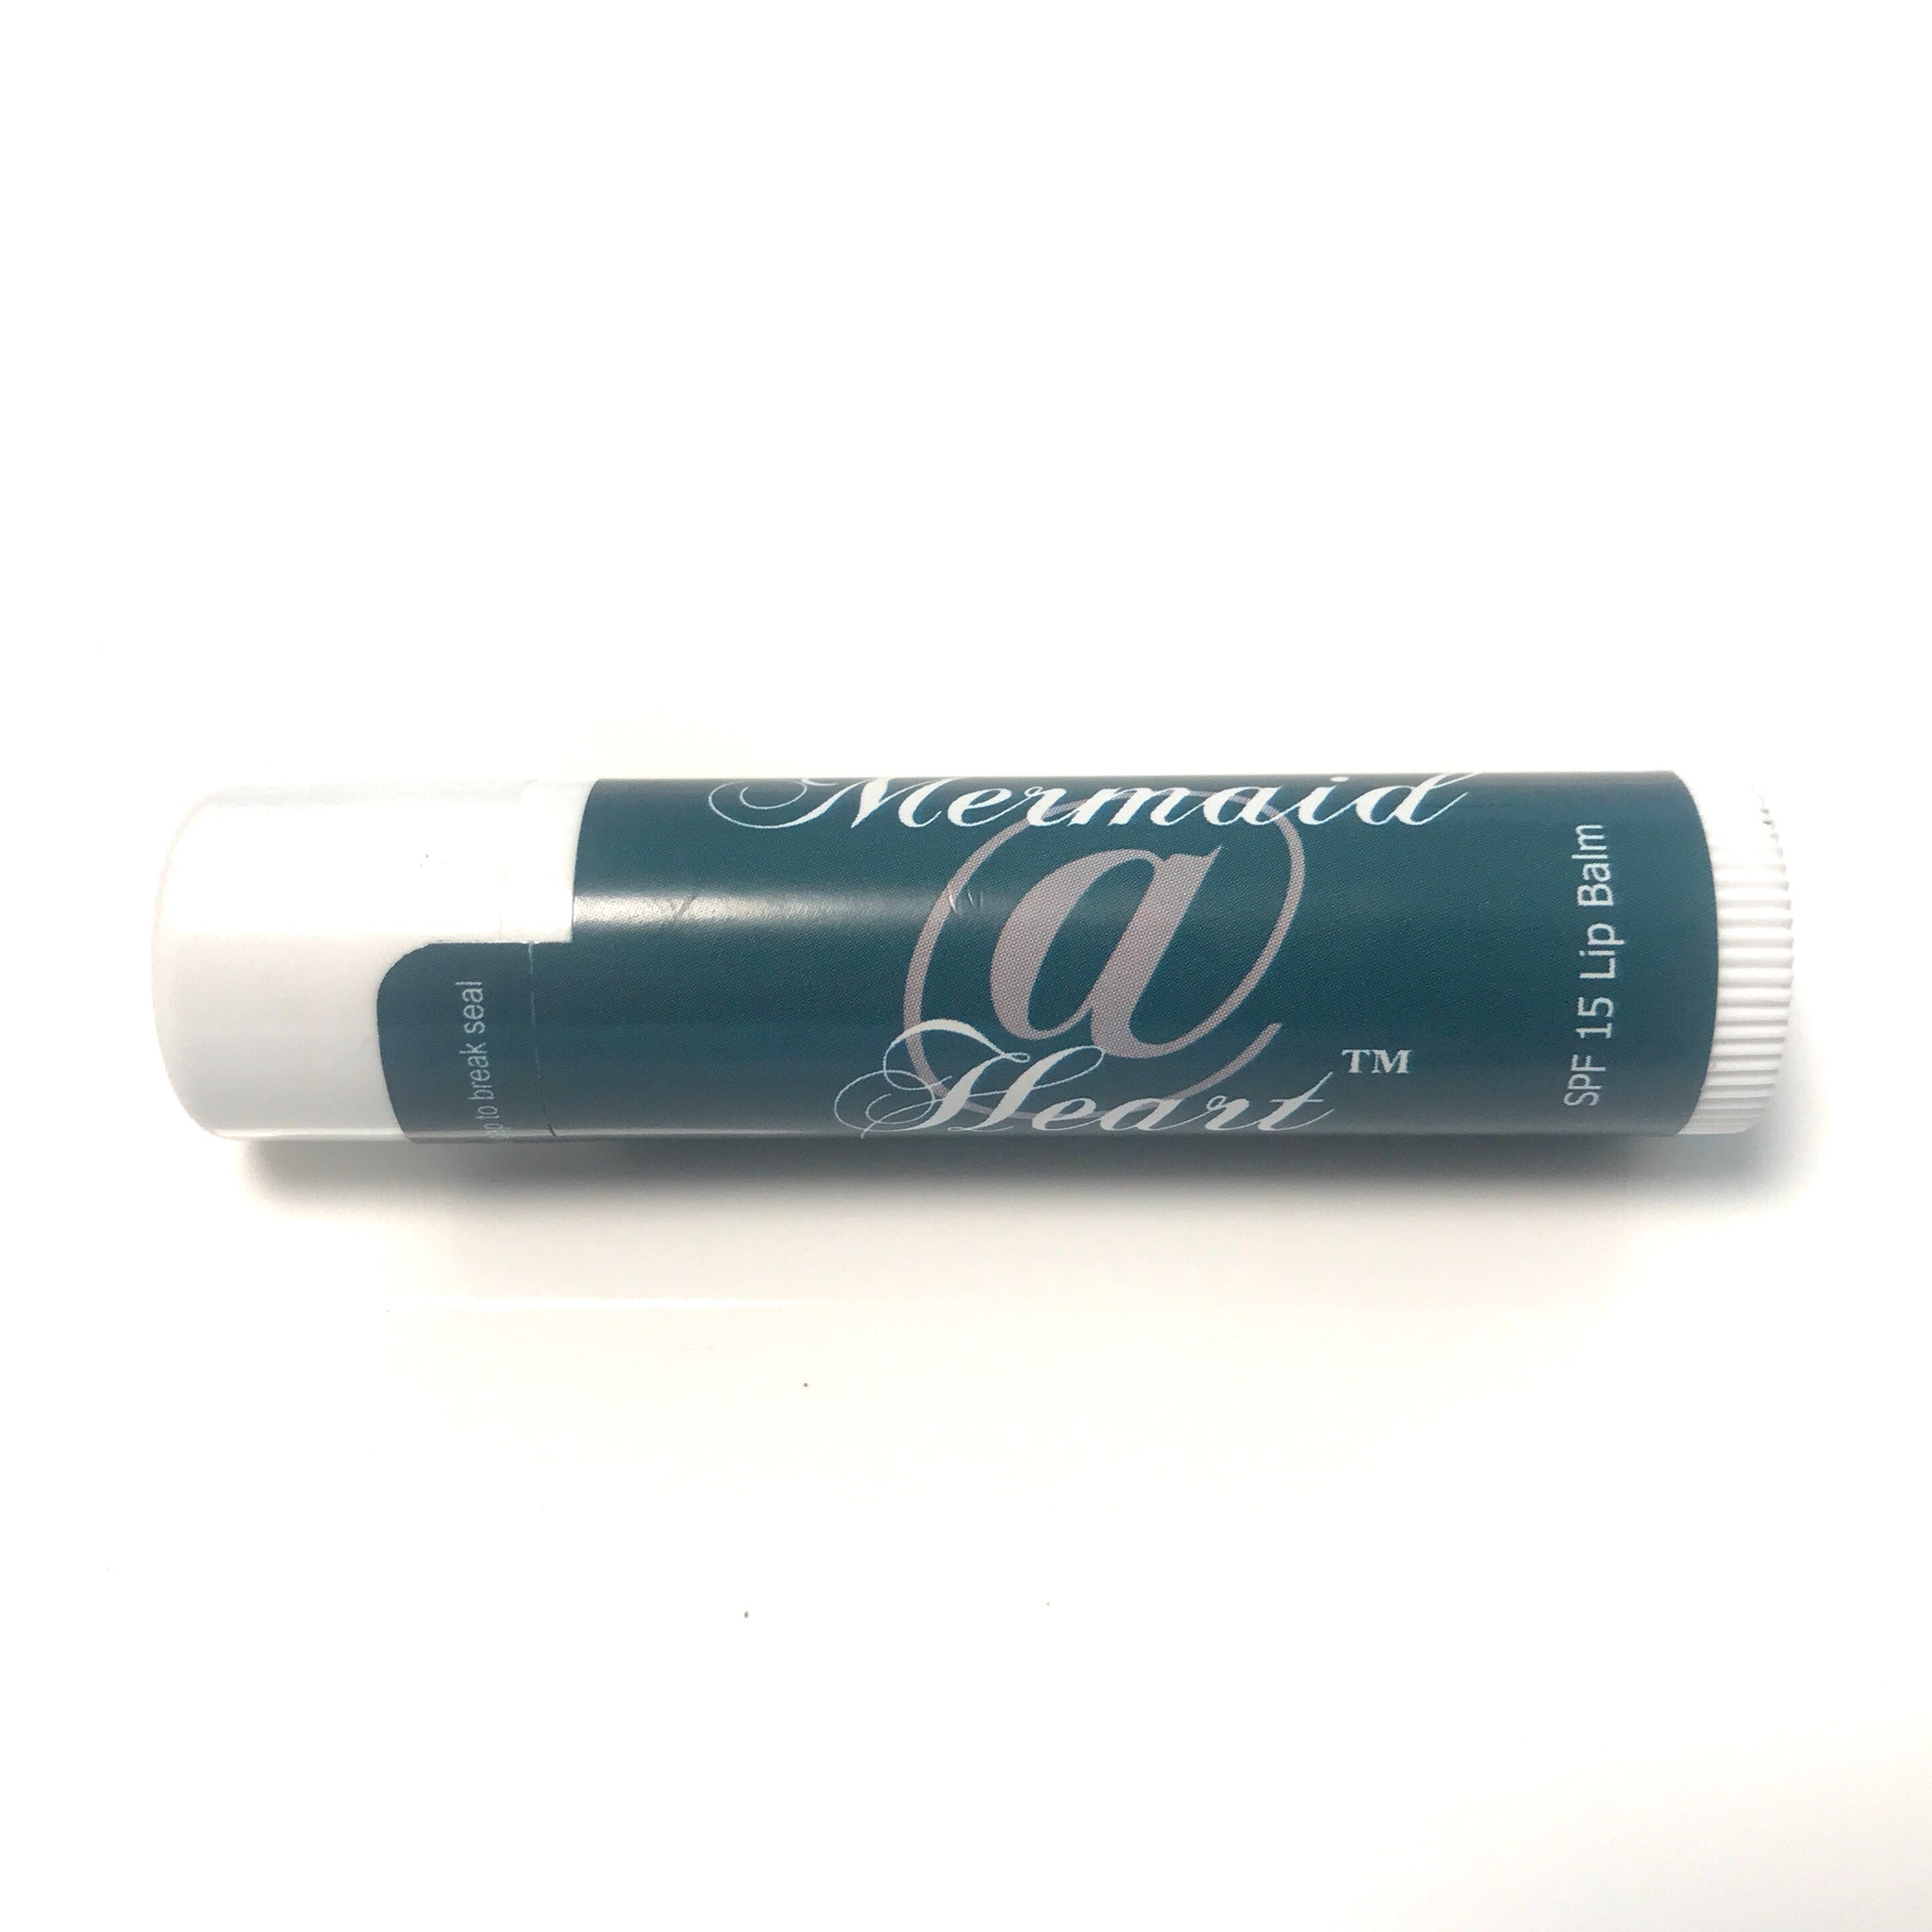 Mermaid@Heart™ SPF 15 Coconut Cream Lip Balm